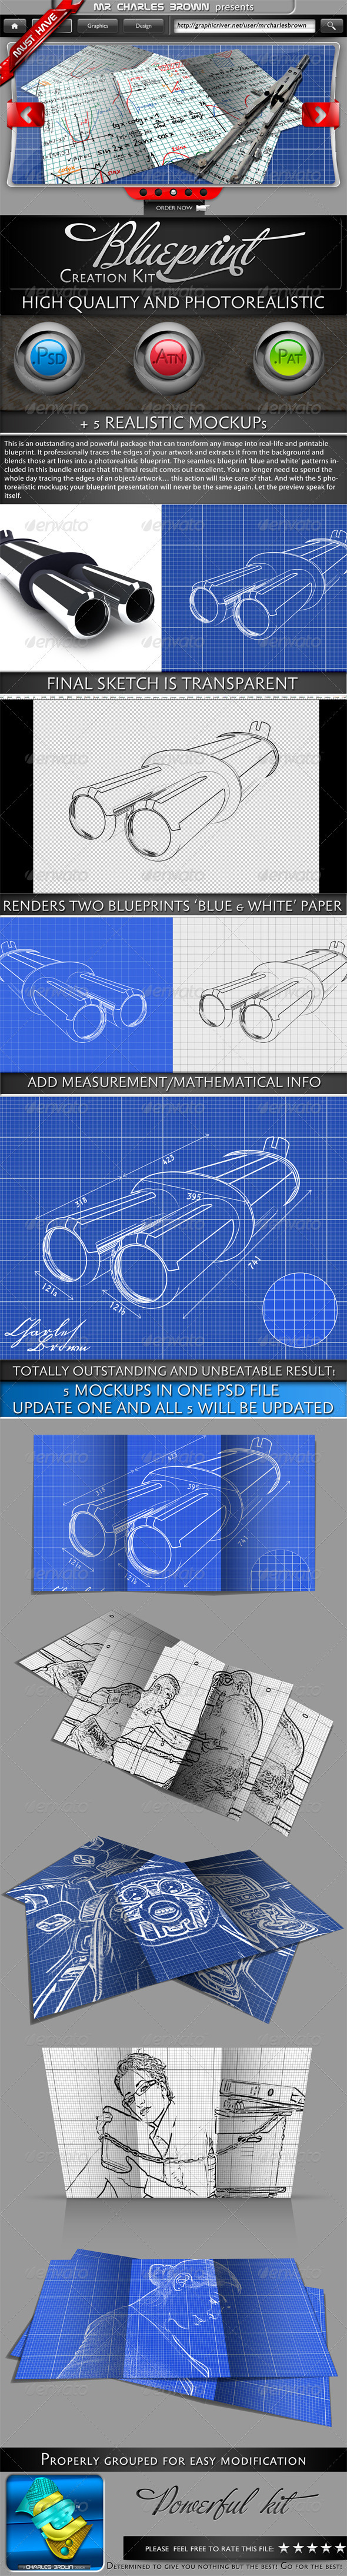 Blueprint Creation Kit - Photoshop Add-ons